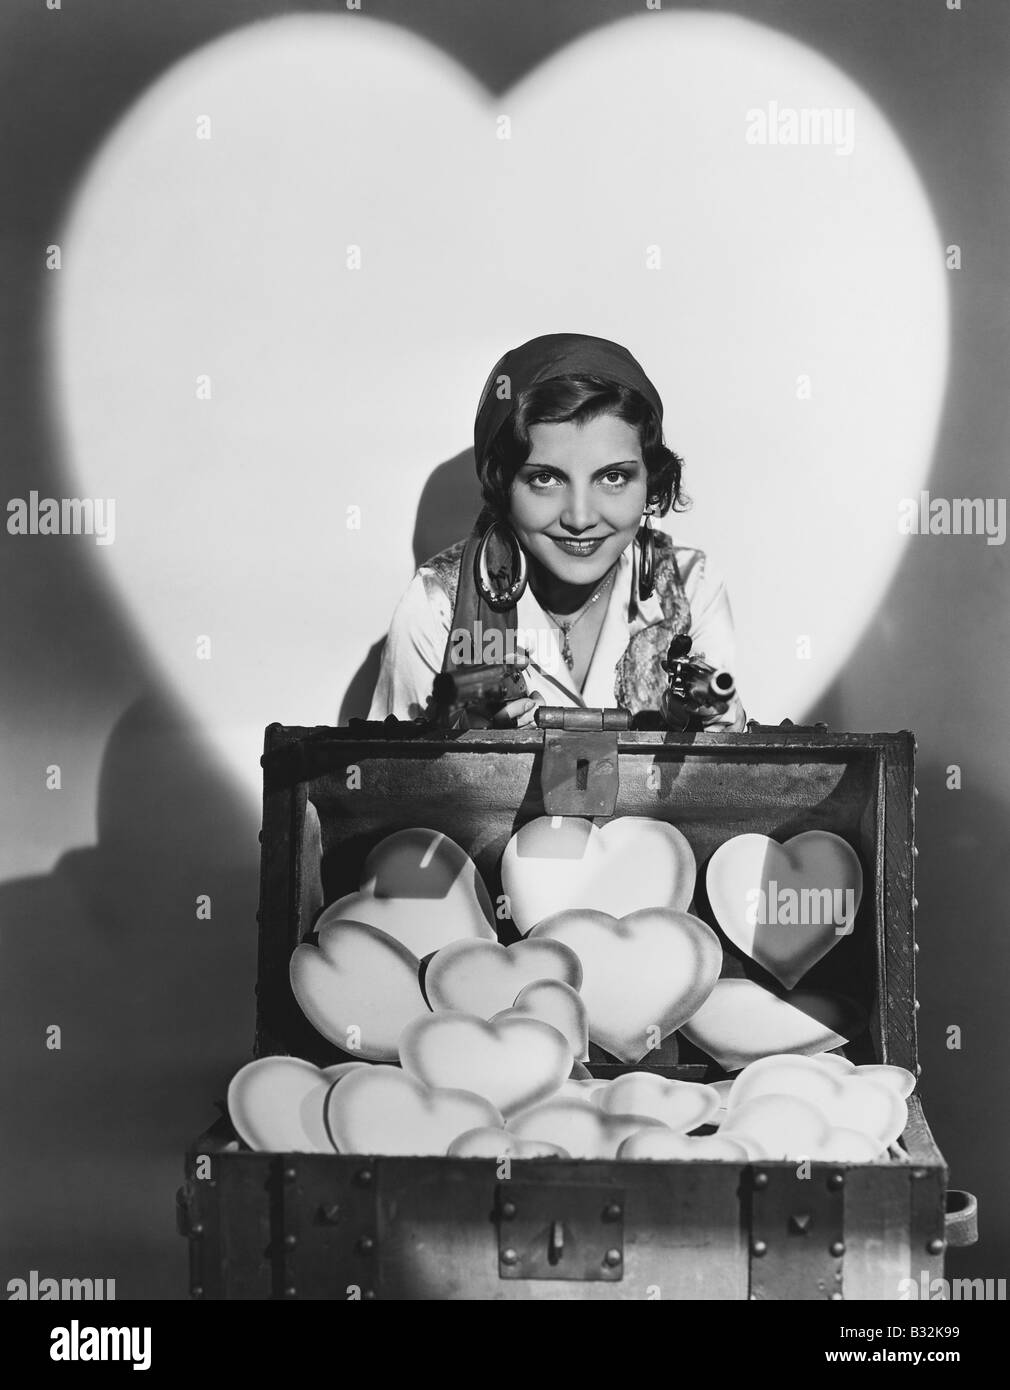 Portrait of woman with trunk full of hearts - Stock Image